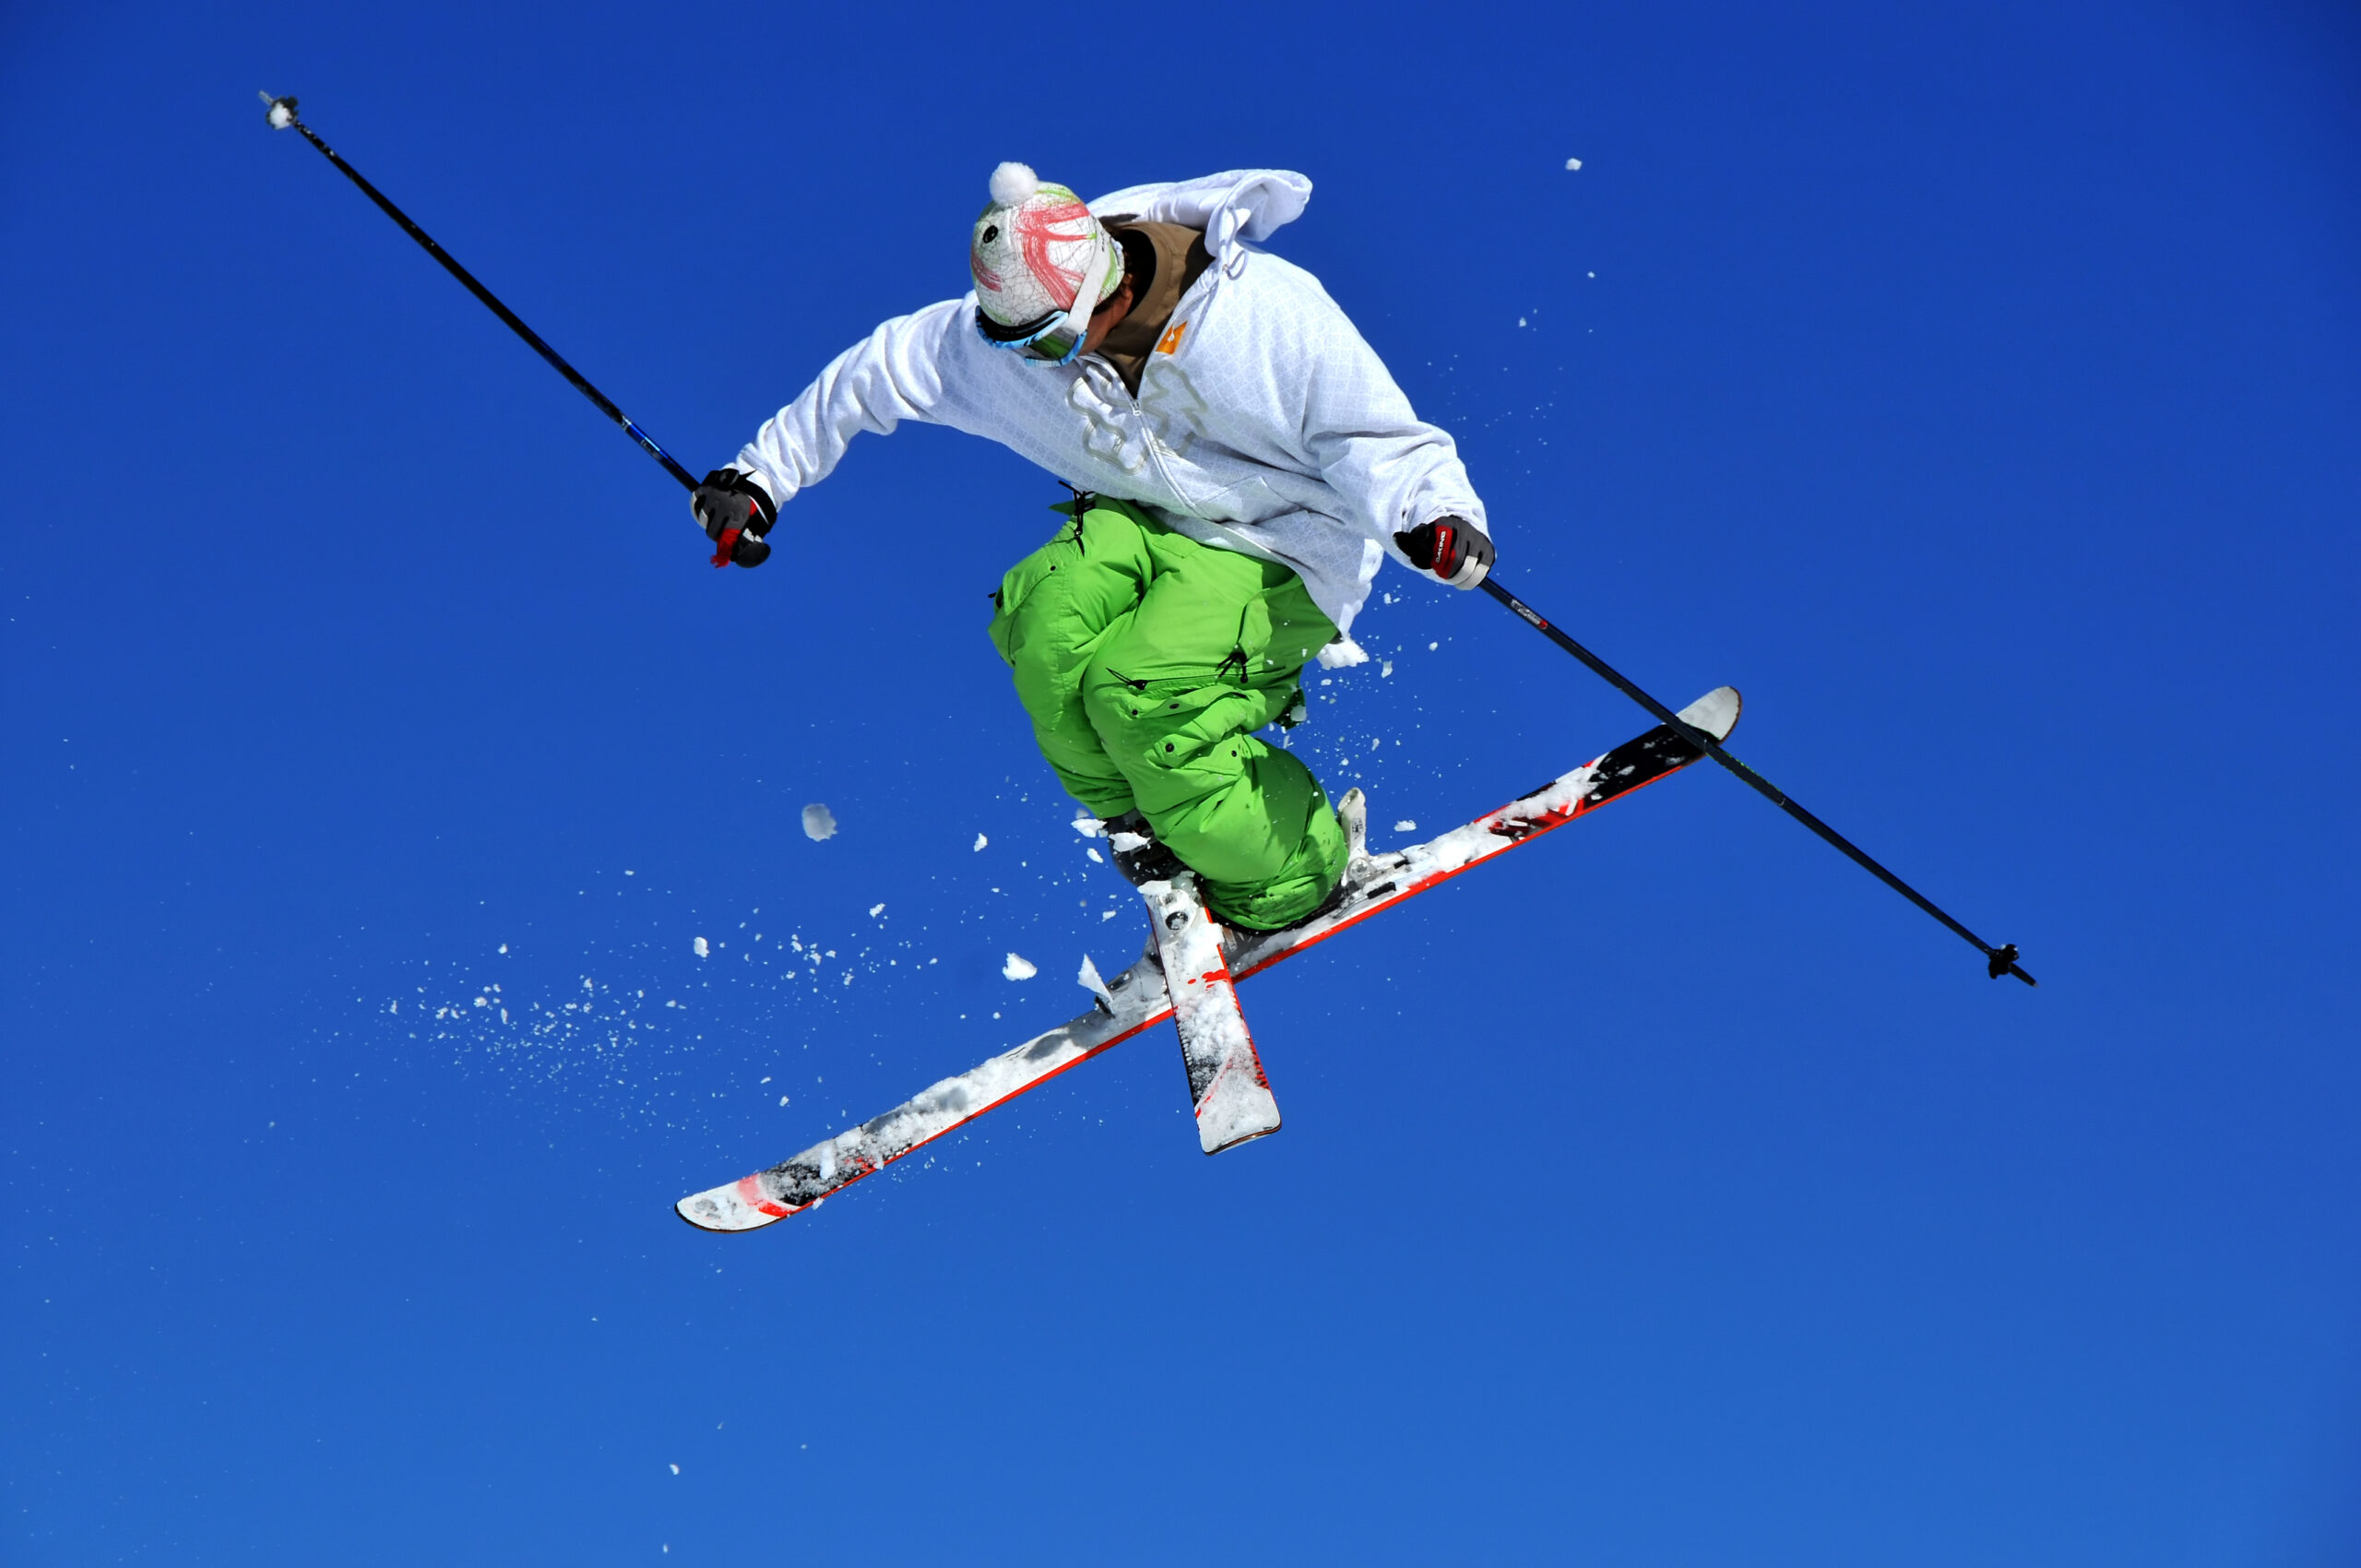 Jibber or Noob? Find out what ski tribe you belong to